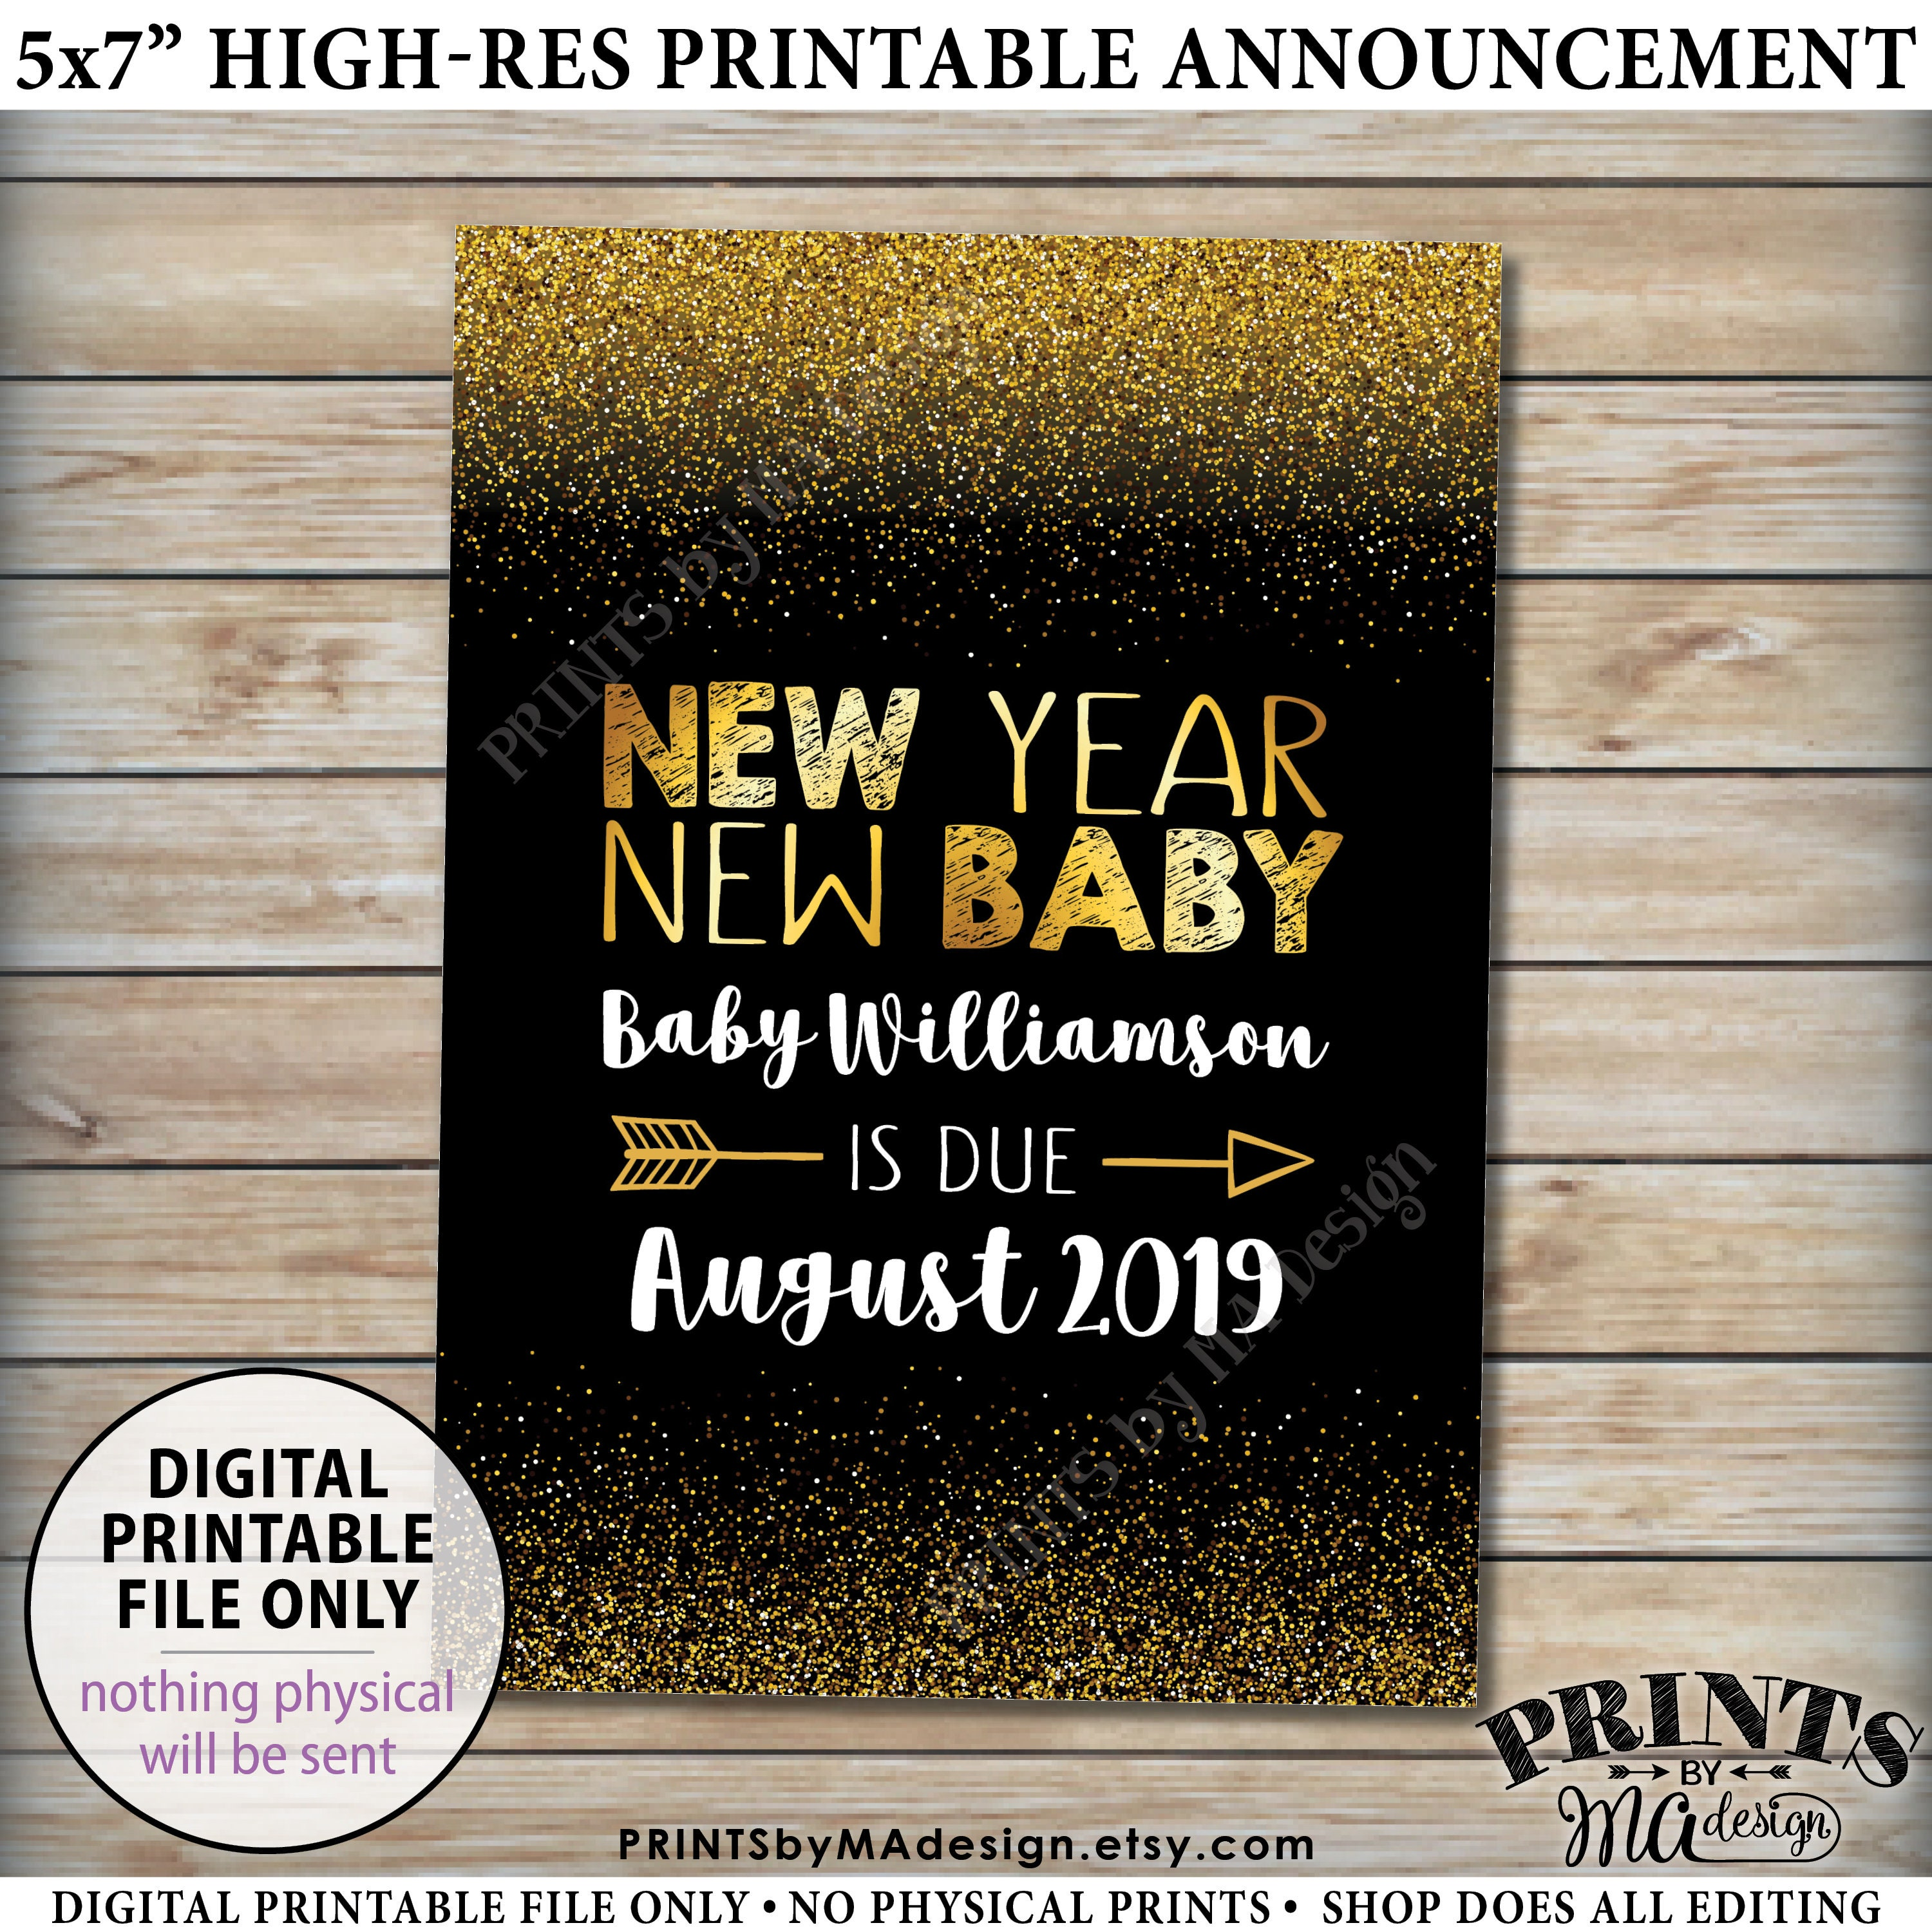 new years pregnancy announcement card new year new baby expecting in 2019 black gold glitter custom printable 5x7 pregnancy reveal card